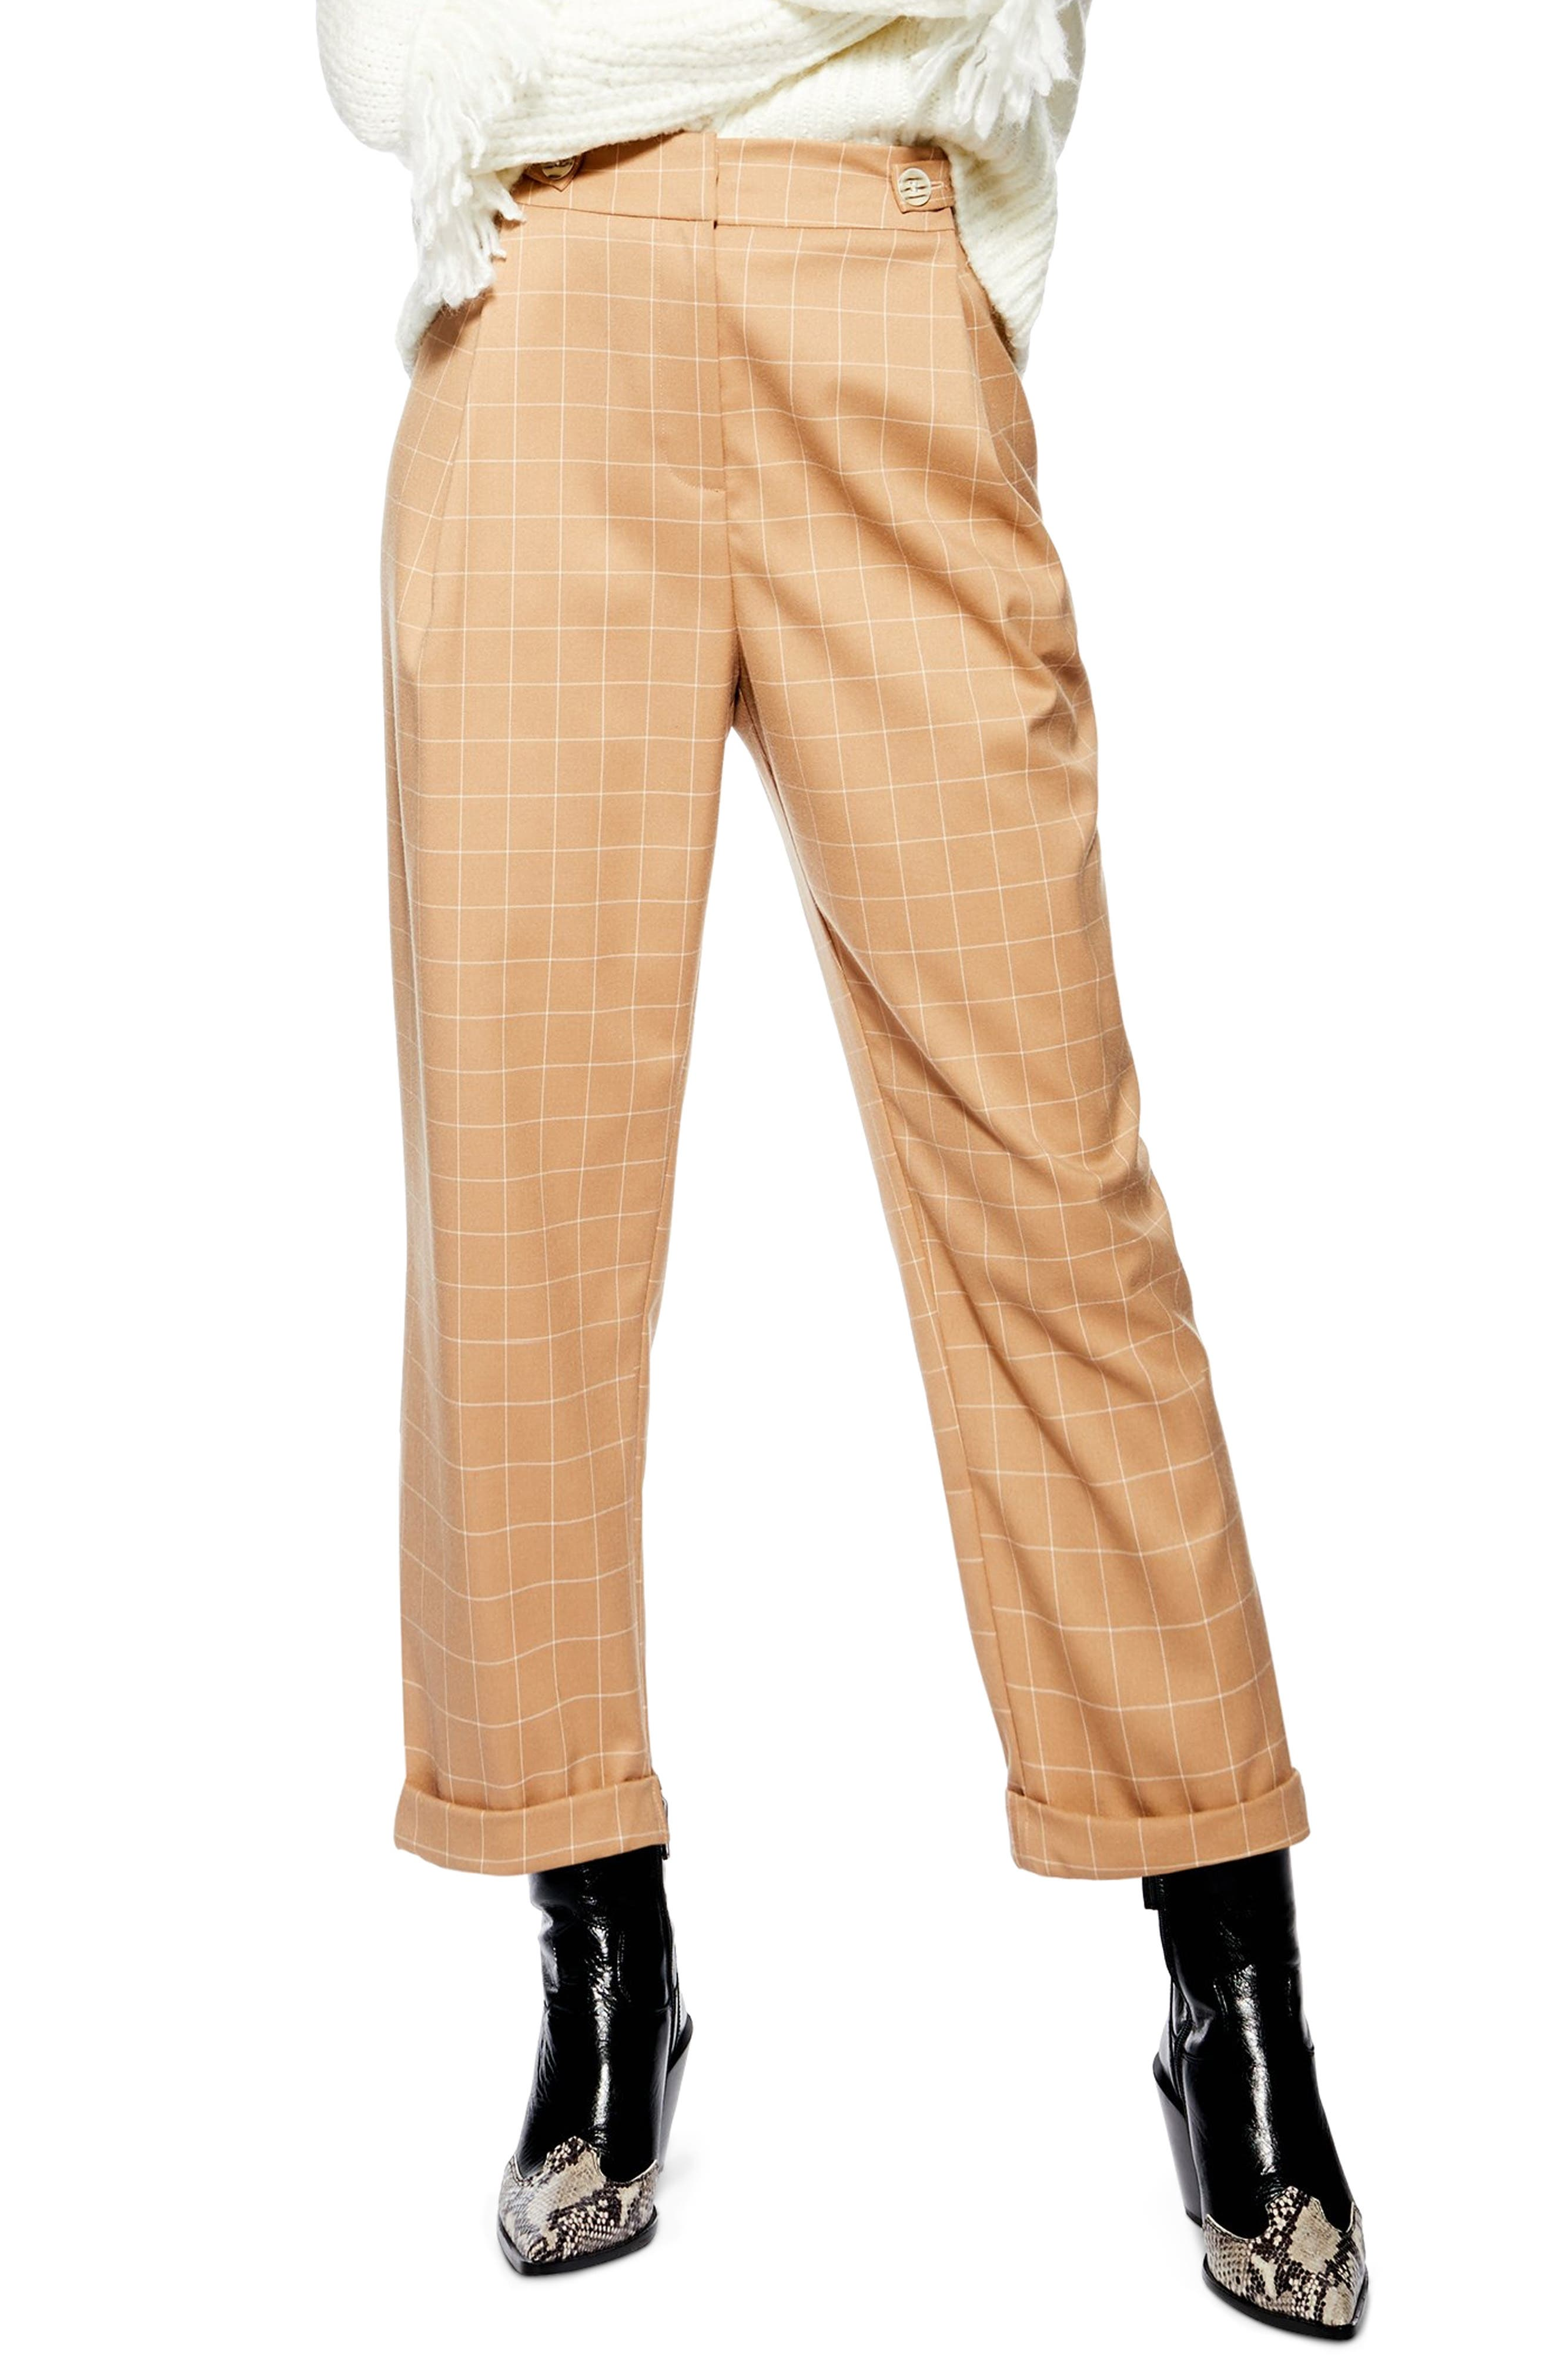 1920s Style Women's Pants, Trousers, Knickers, Tuxedo Womens Topshop Windowpane Check Mensy Trousers $37.50 AT vintagedancer.com